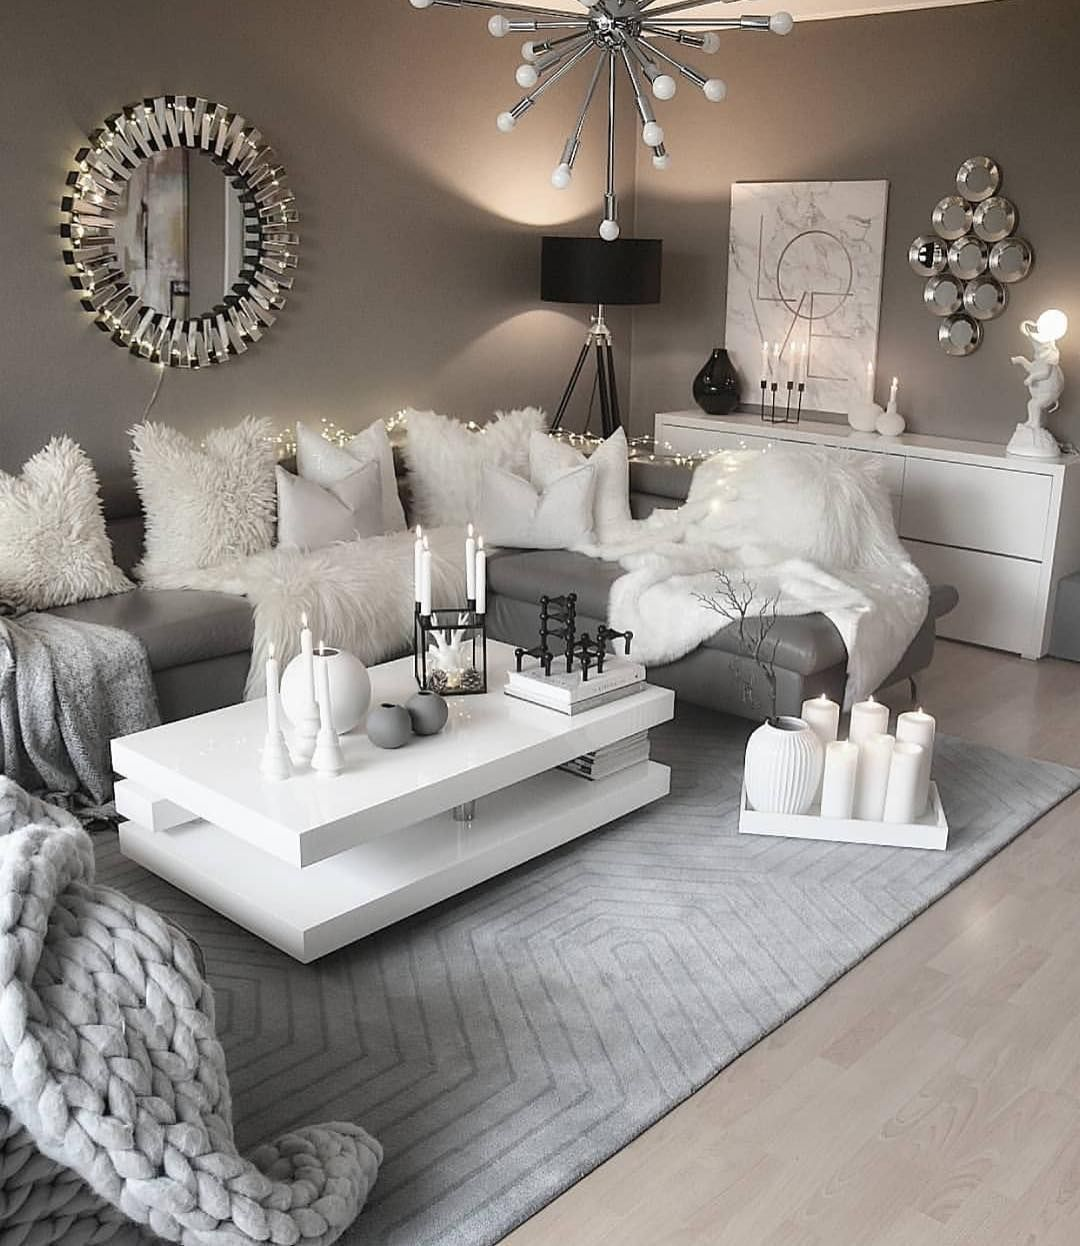 Modern Home Decor Ideas For A Beautiful Living Space (avec images